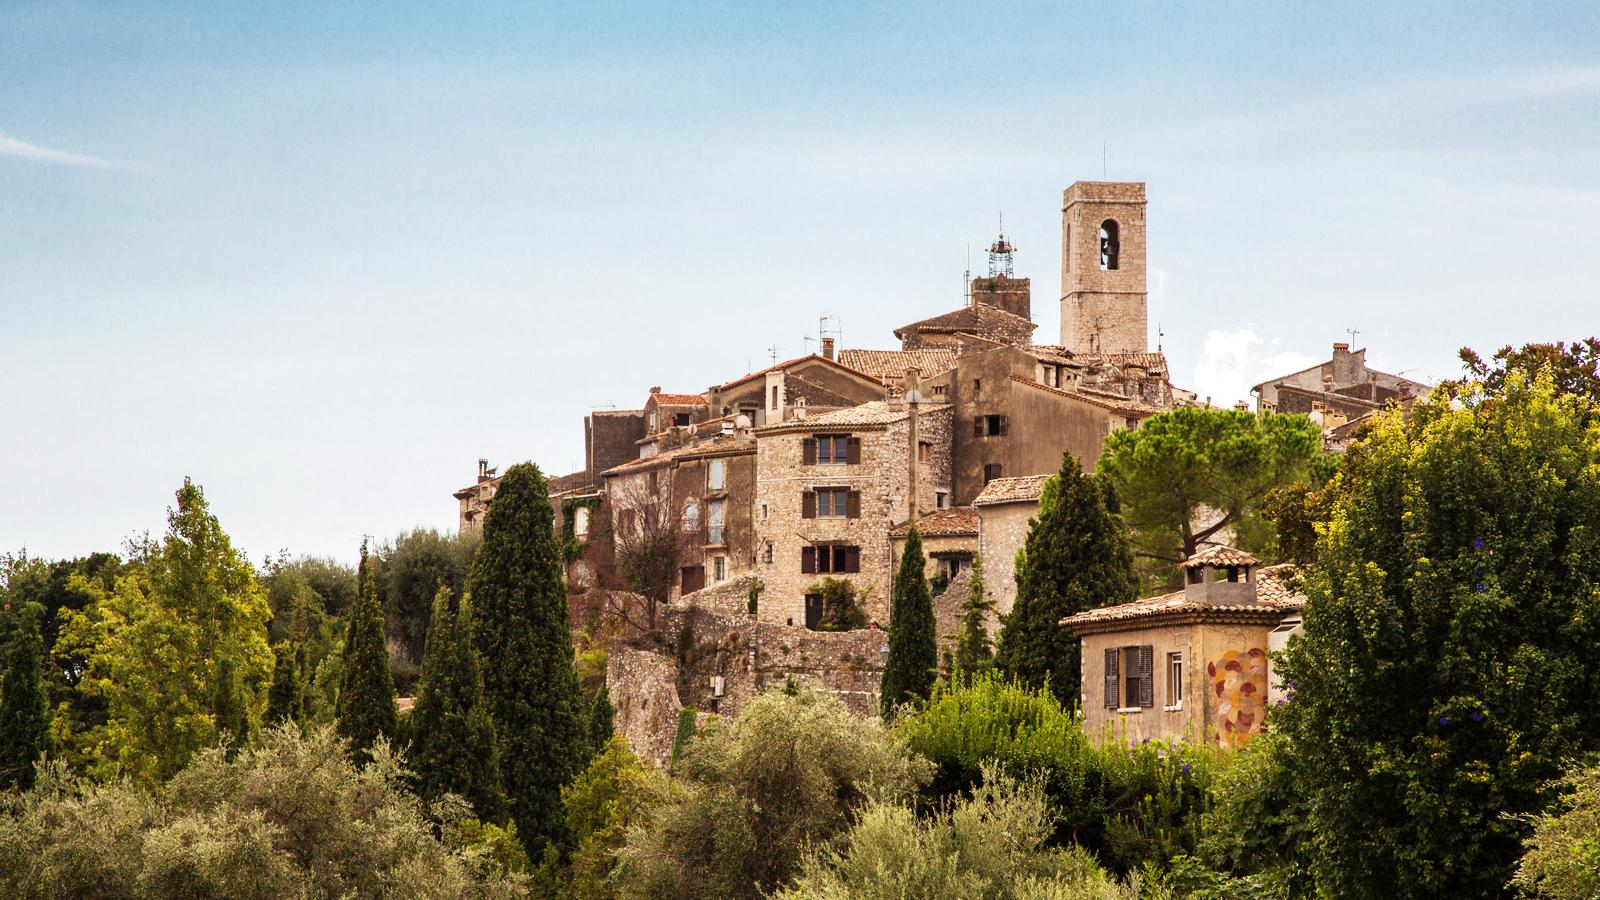 Saint paul de vence guide tourisme vacances - Office de tourisme de saint paul de vence ...